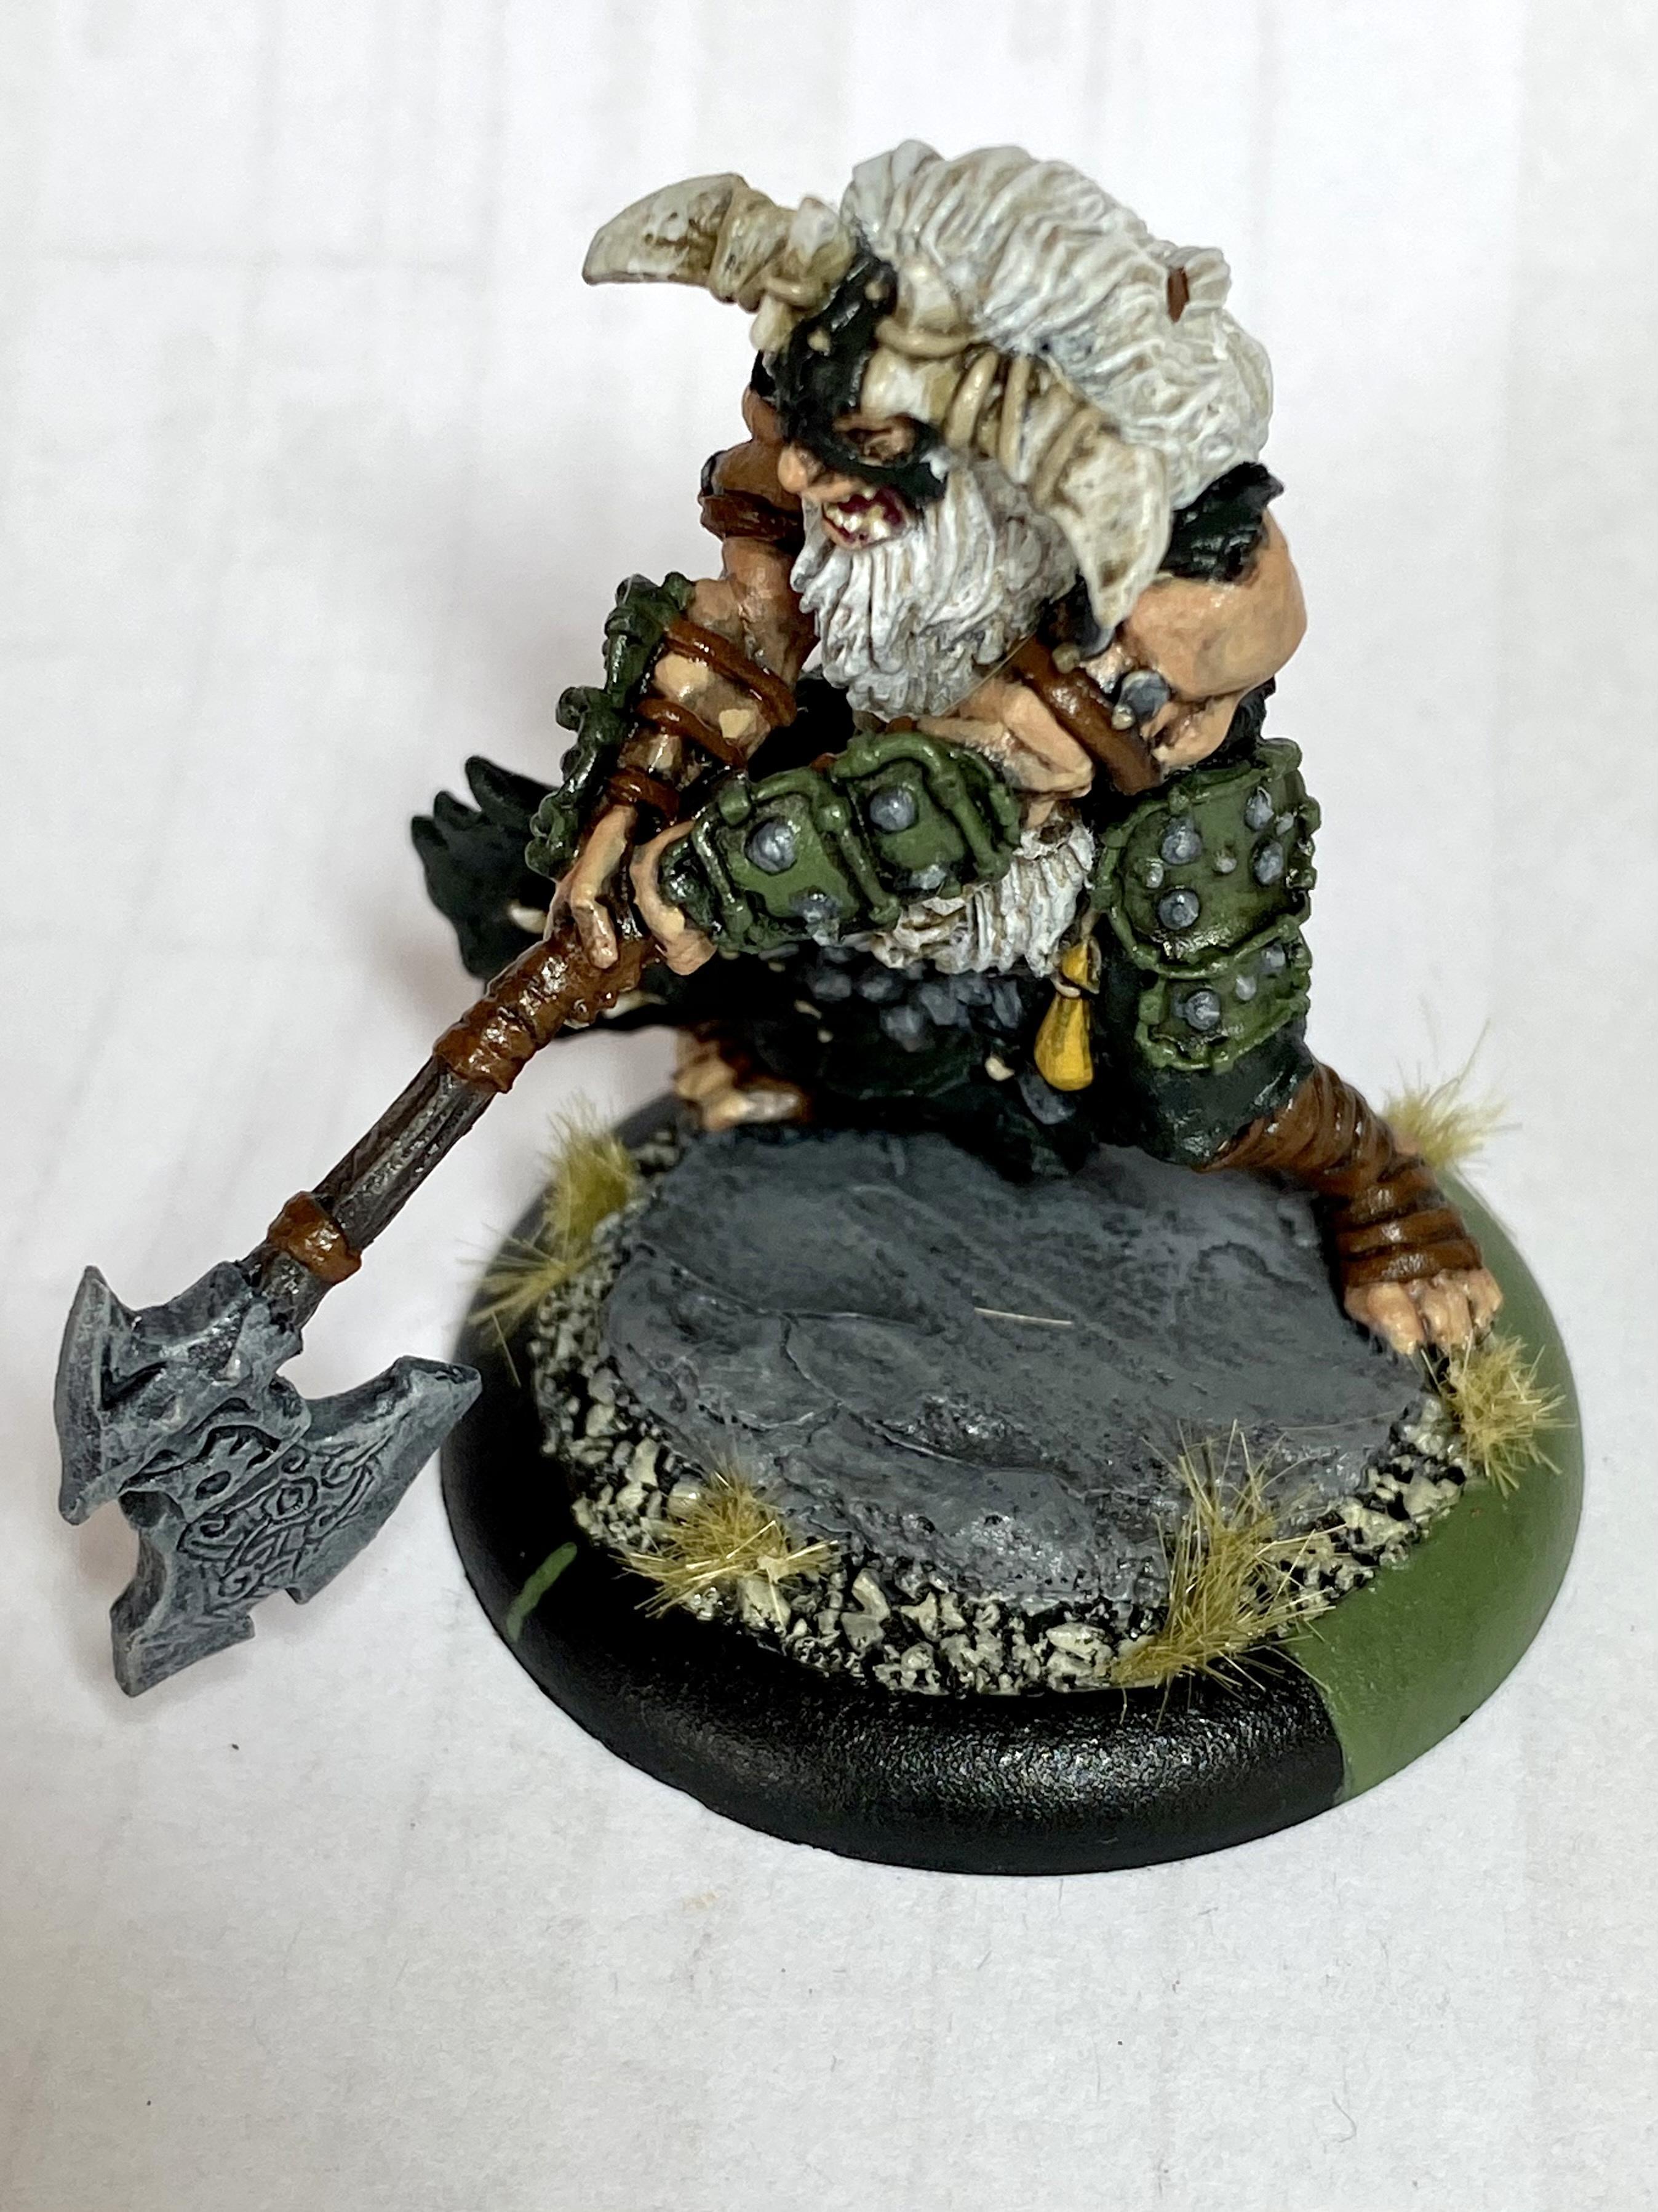 Circle Of Orboros, Hordes, Privateer Press, Solo, Tharn, Warmachine